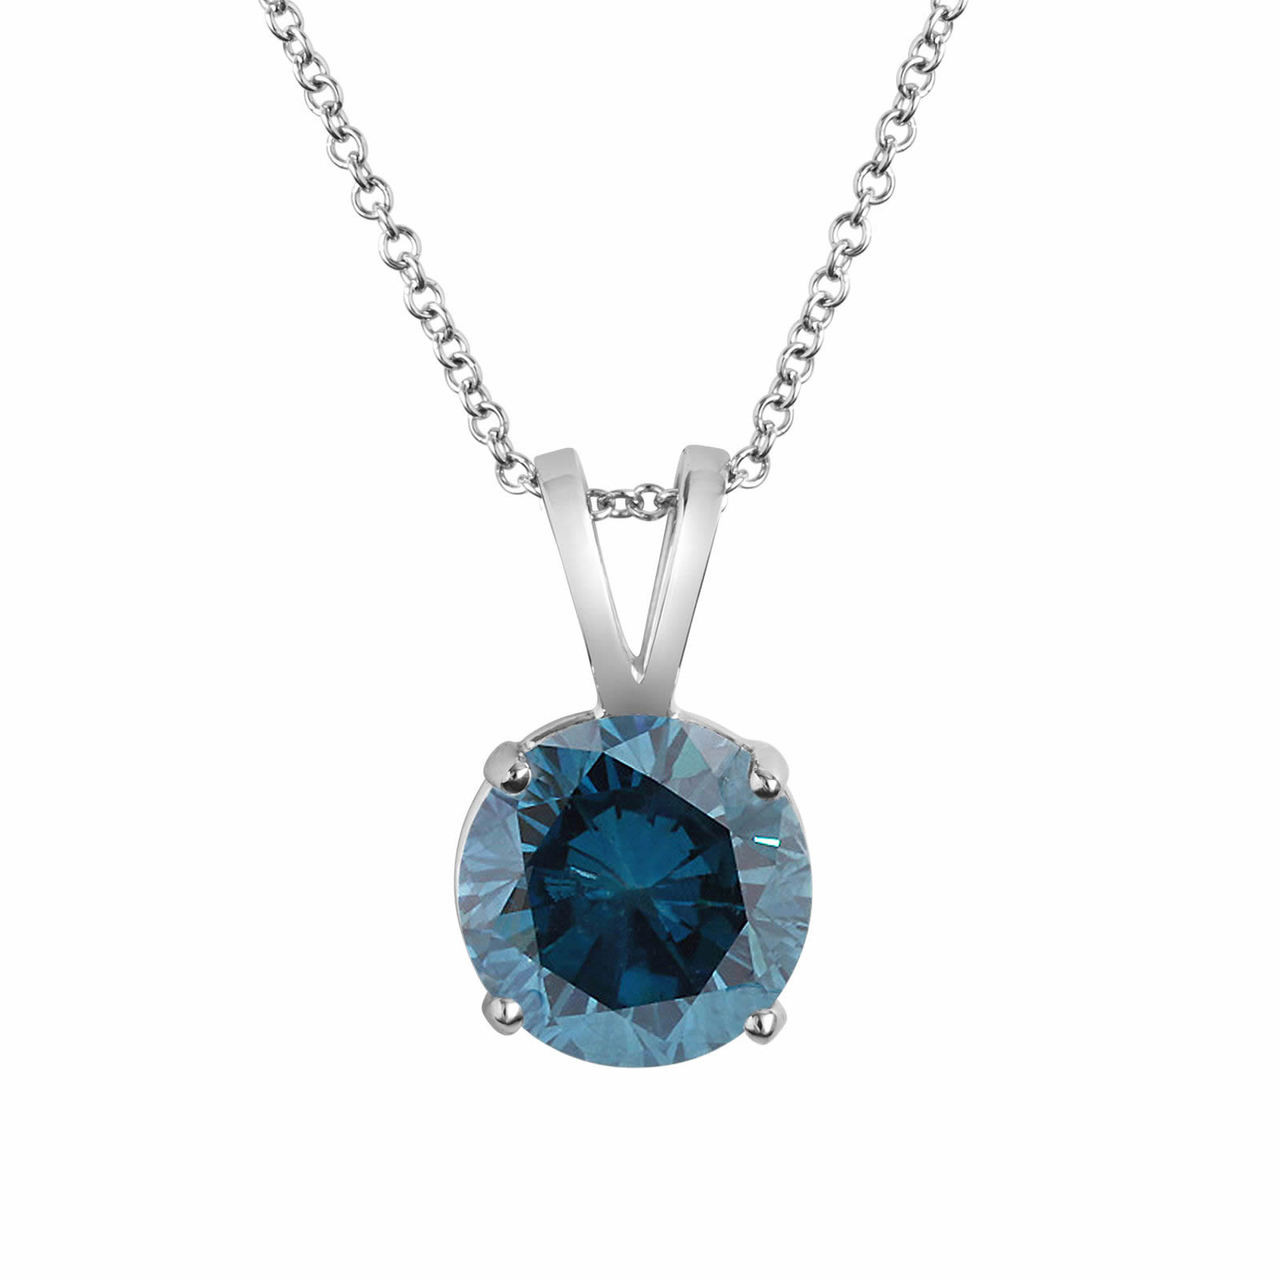 1 carat blue diamond solitaire pendant necklace certified 14k white 1 carat blue diamond solitaire pendant necklace certified 14k white gold handmade aloadofball Image collections